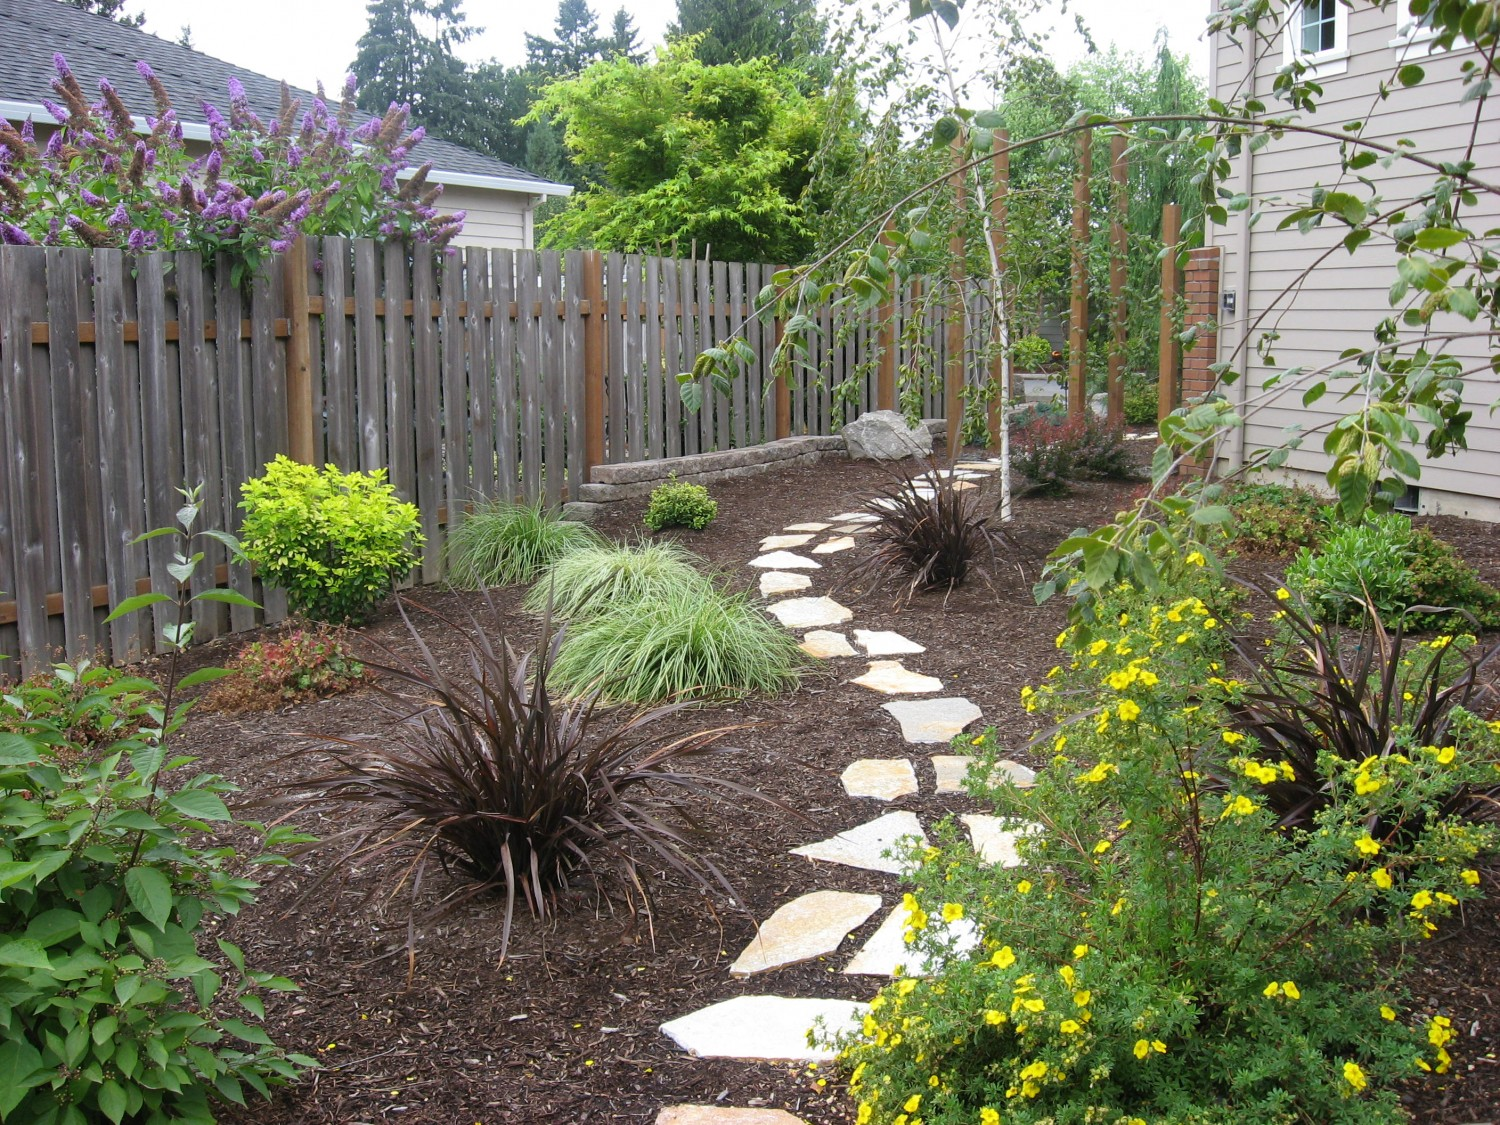 Hardscapes ann nickerson landscape design inc for Landscape design inc